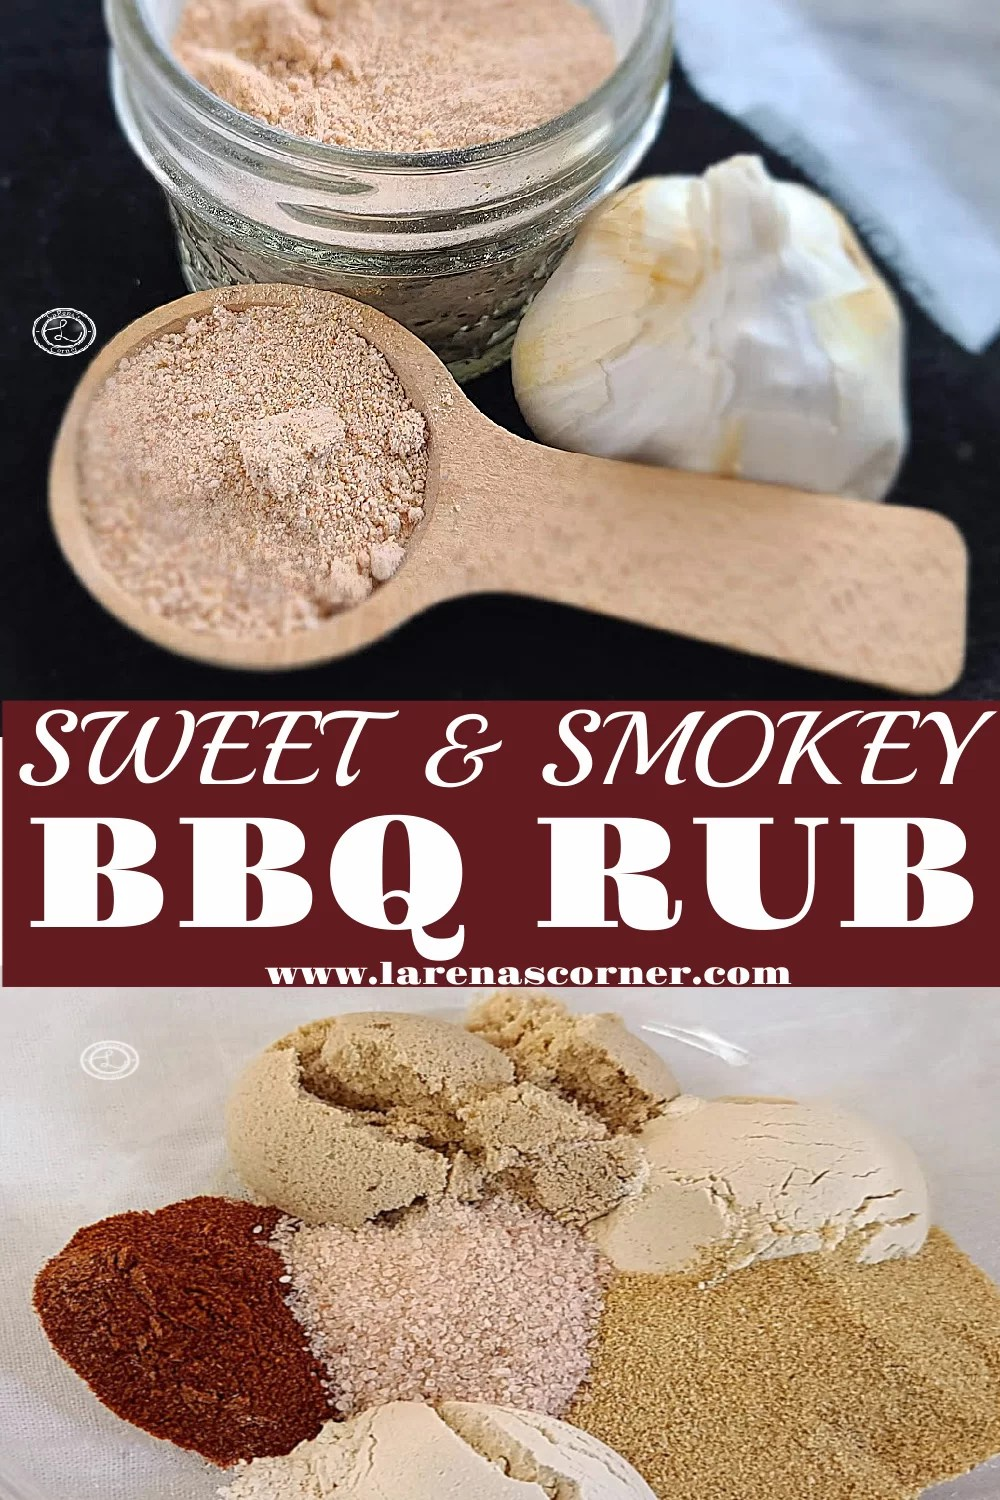 Sweet Smokey BBQ Rub: 2 Pictures. One of all the spices in a bowl. One of all the spices combined in a jar and on a spoon with a bulb of garlic to decorate.